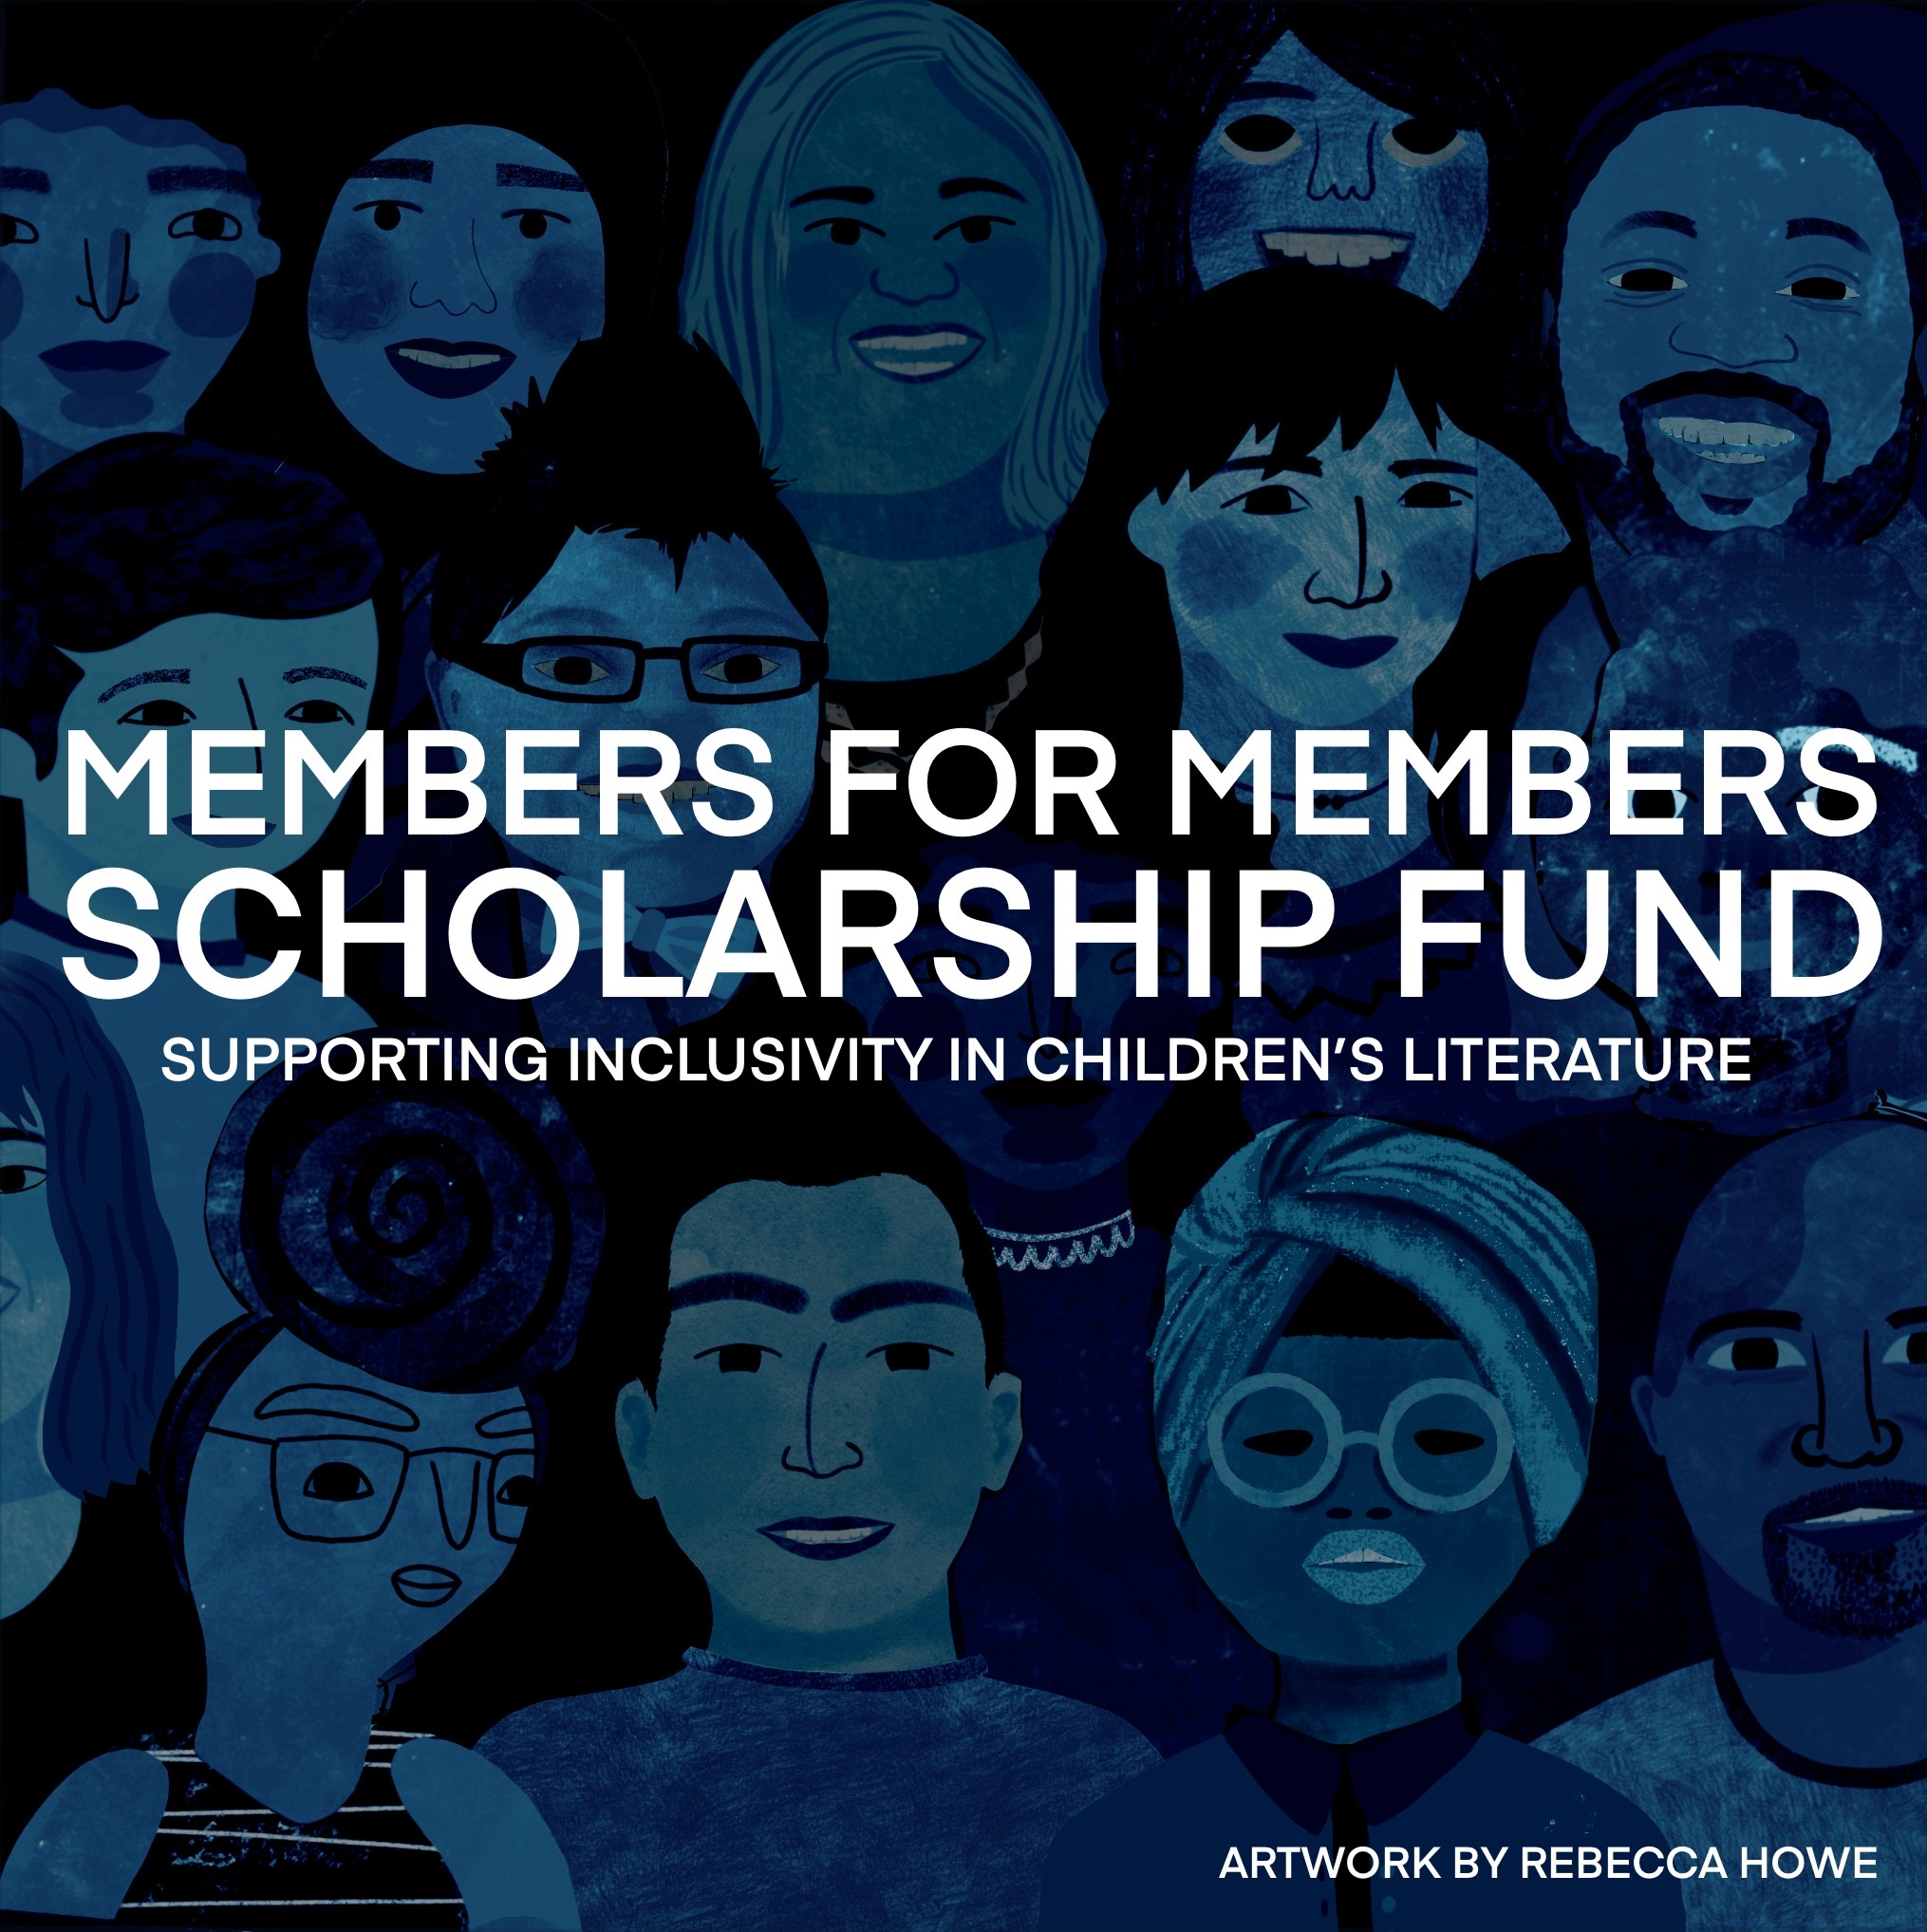 Members For Members Scholarship Fund New Extended Deadline for the Members for Members Scholarship Fund Applications This M4M scholarship will be awarded to writers and/or illustrators who are Michigan residents and who wish to become members of SCBWI or tocurrent SCBWI-Michigan members who fit the scholarship guidelines. Scholarship winnerswill receive a year's membership to SCBWI or in the case of current members,as an add-on to the current membership, OR funds may go towards an SCBWI-MI conference.  Awardees will have an interest in and are actively working toward creating children's books that resonate with diverse readers. We recognize all diverse experiences and seek applicants who promote inclusion and support underrepresented groups in children's publishing including, but not limited to, those marginalized due to race/ethnicity, disability, sexual orientation, gender and gender identity, socioeconomic status, geography, citizenship, and religion. The scholarship will offset the cost of an annual membership in SCBWI (which includes membership in SCBWI-Michigan and iscurrently $80.00 for full membership and $65.00 for student membership) or may be applied towards an SCBWI-MI conference. This grant is sponsored by donations from current SCBWI-Michigan members. The number of awards will be determined by donations to this scholarship fund. Extended Deadline: Submissions are openthrough June 1, 2020. The winner(s) of the scholarships will be announced on or about June 15.  Guidelines: This award is open to persons who live in Michigan. Please collect the following information in the body of an email: 1.)Full name and contact information: mailing address, email address, social media handles, and phone number. Indicate if you are a current SCBWI member. 2.)Provide a brief description about works-in-progress or those in the planning stages and how your WIP meets the criteria established above. 3.)Include a statement about why you want to become a member of SCBWI.What